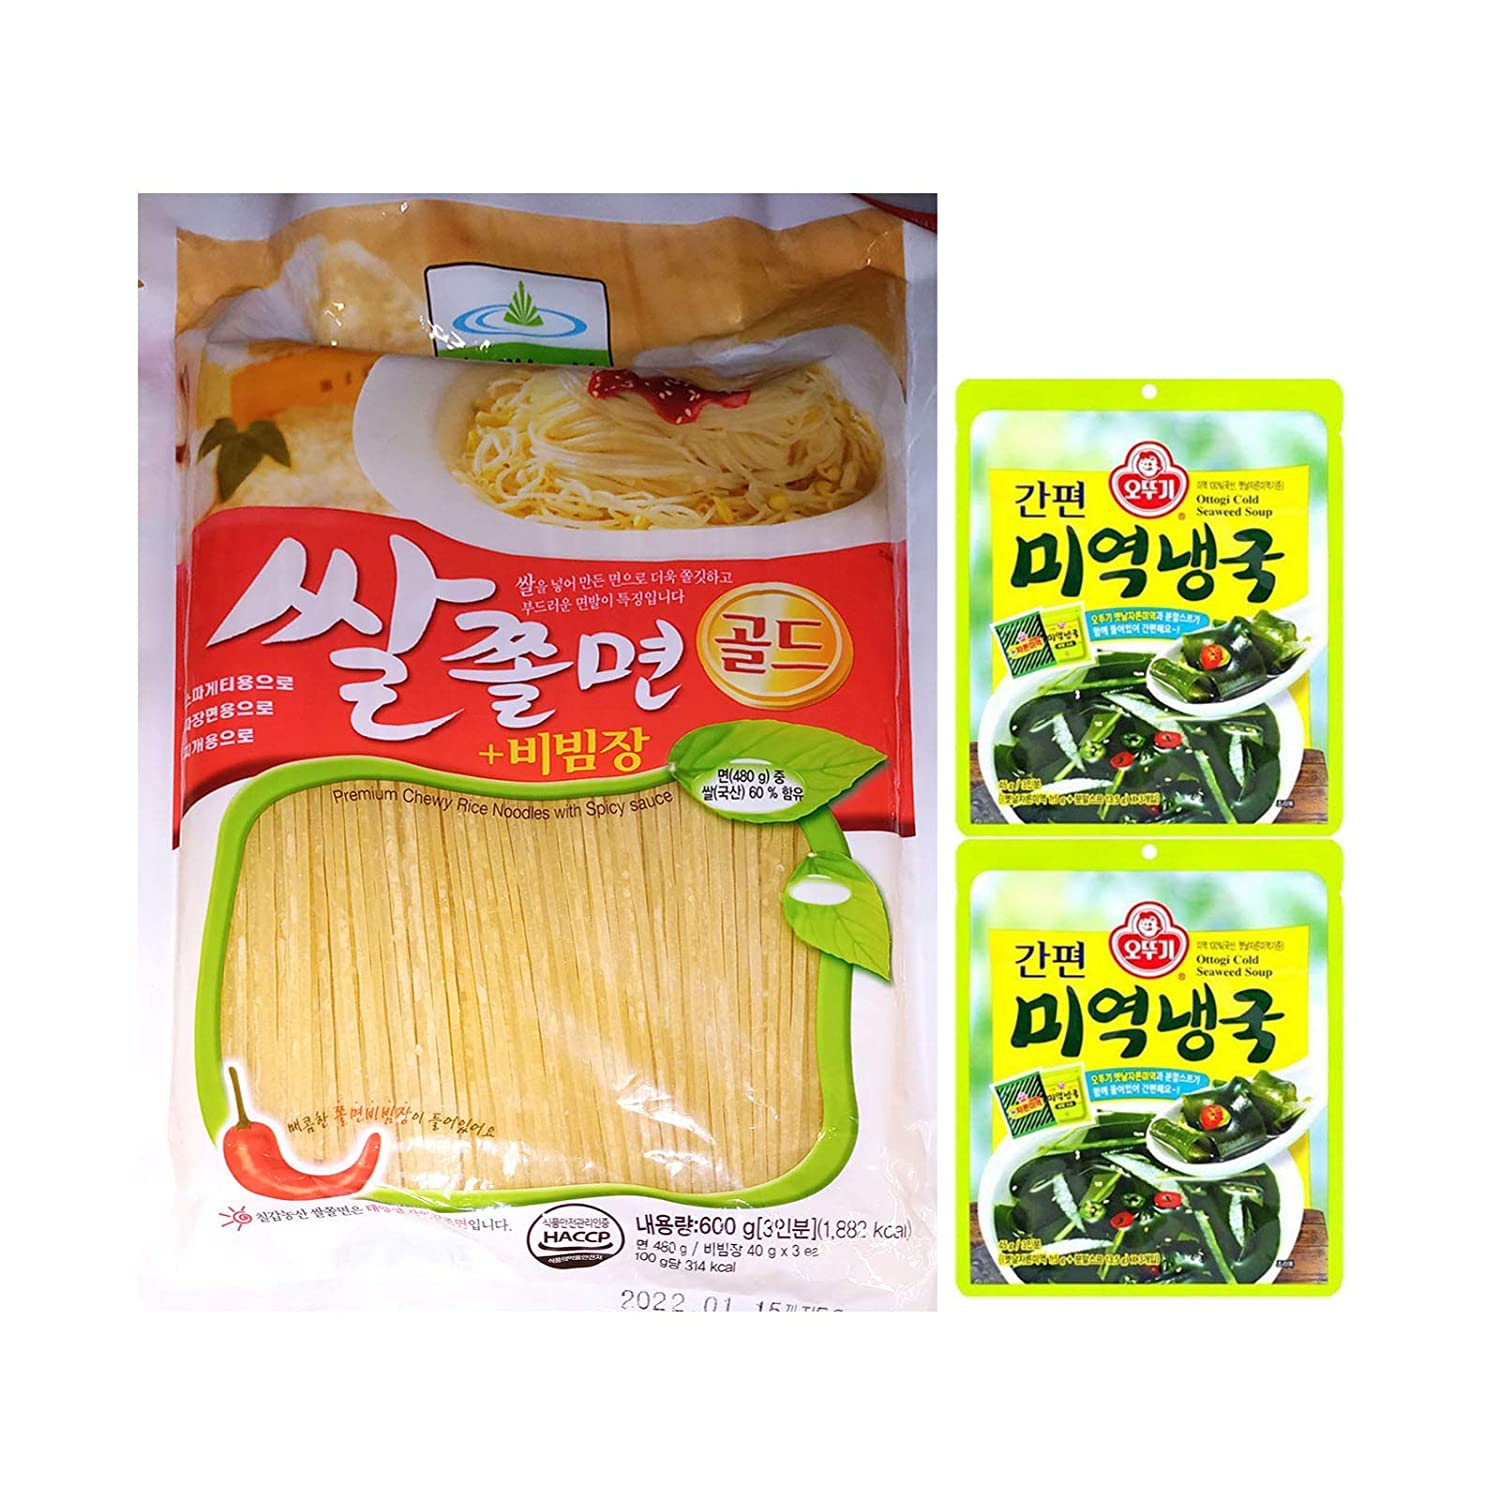 Korean Premium Chewy Rice Noodles wt Spicy Sauce 600g + 2 Seaweed Cold Soup Easy Cooking 쌀쫄면